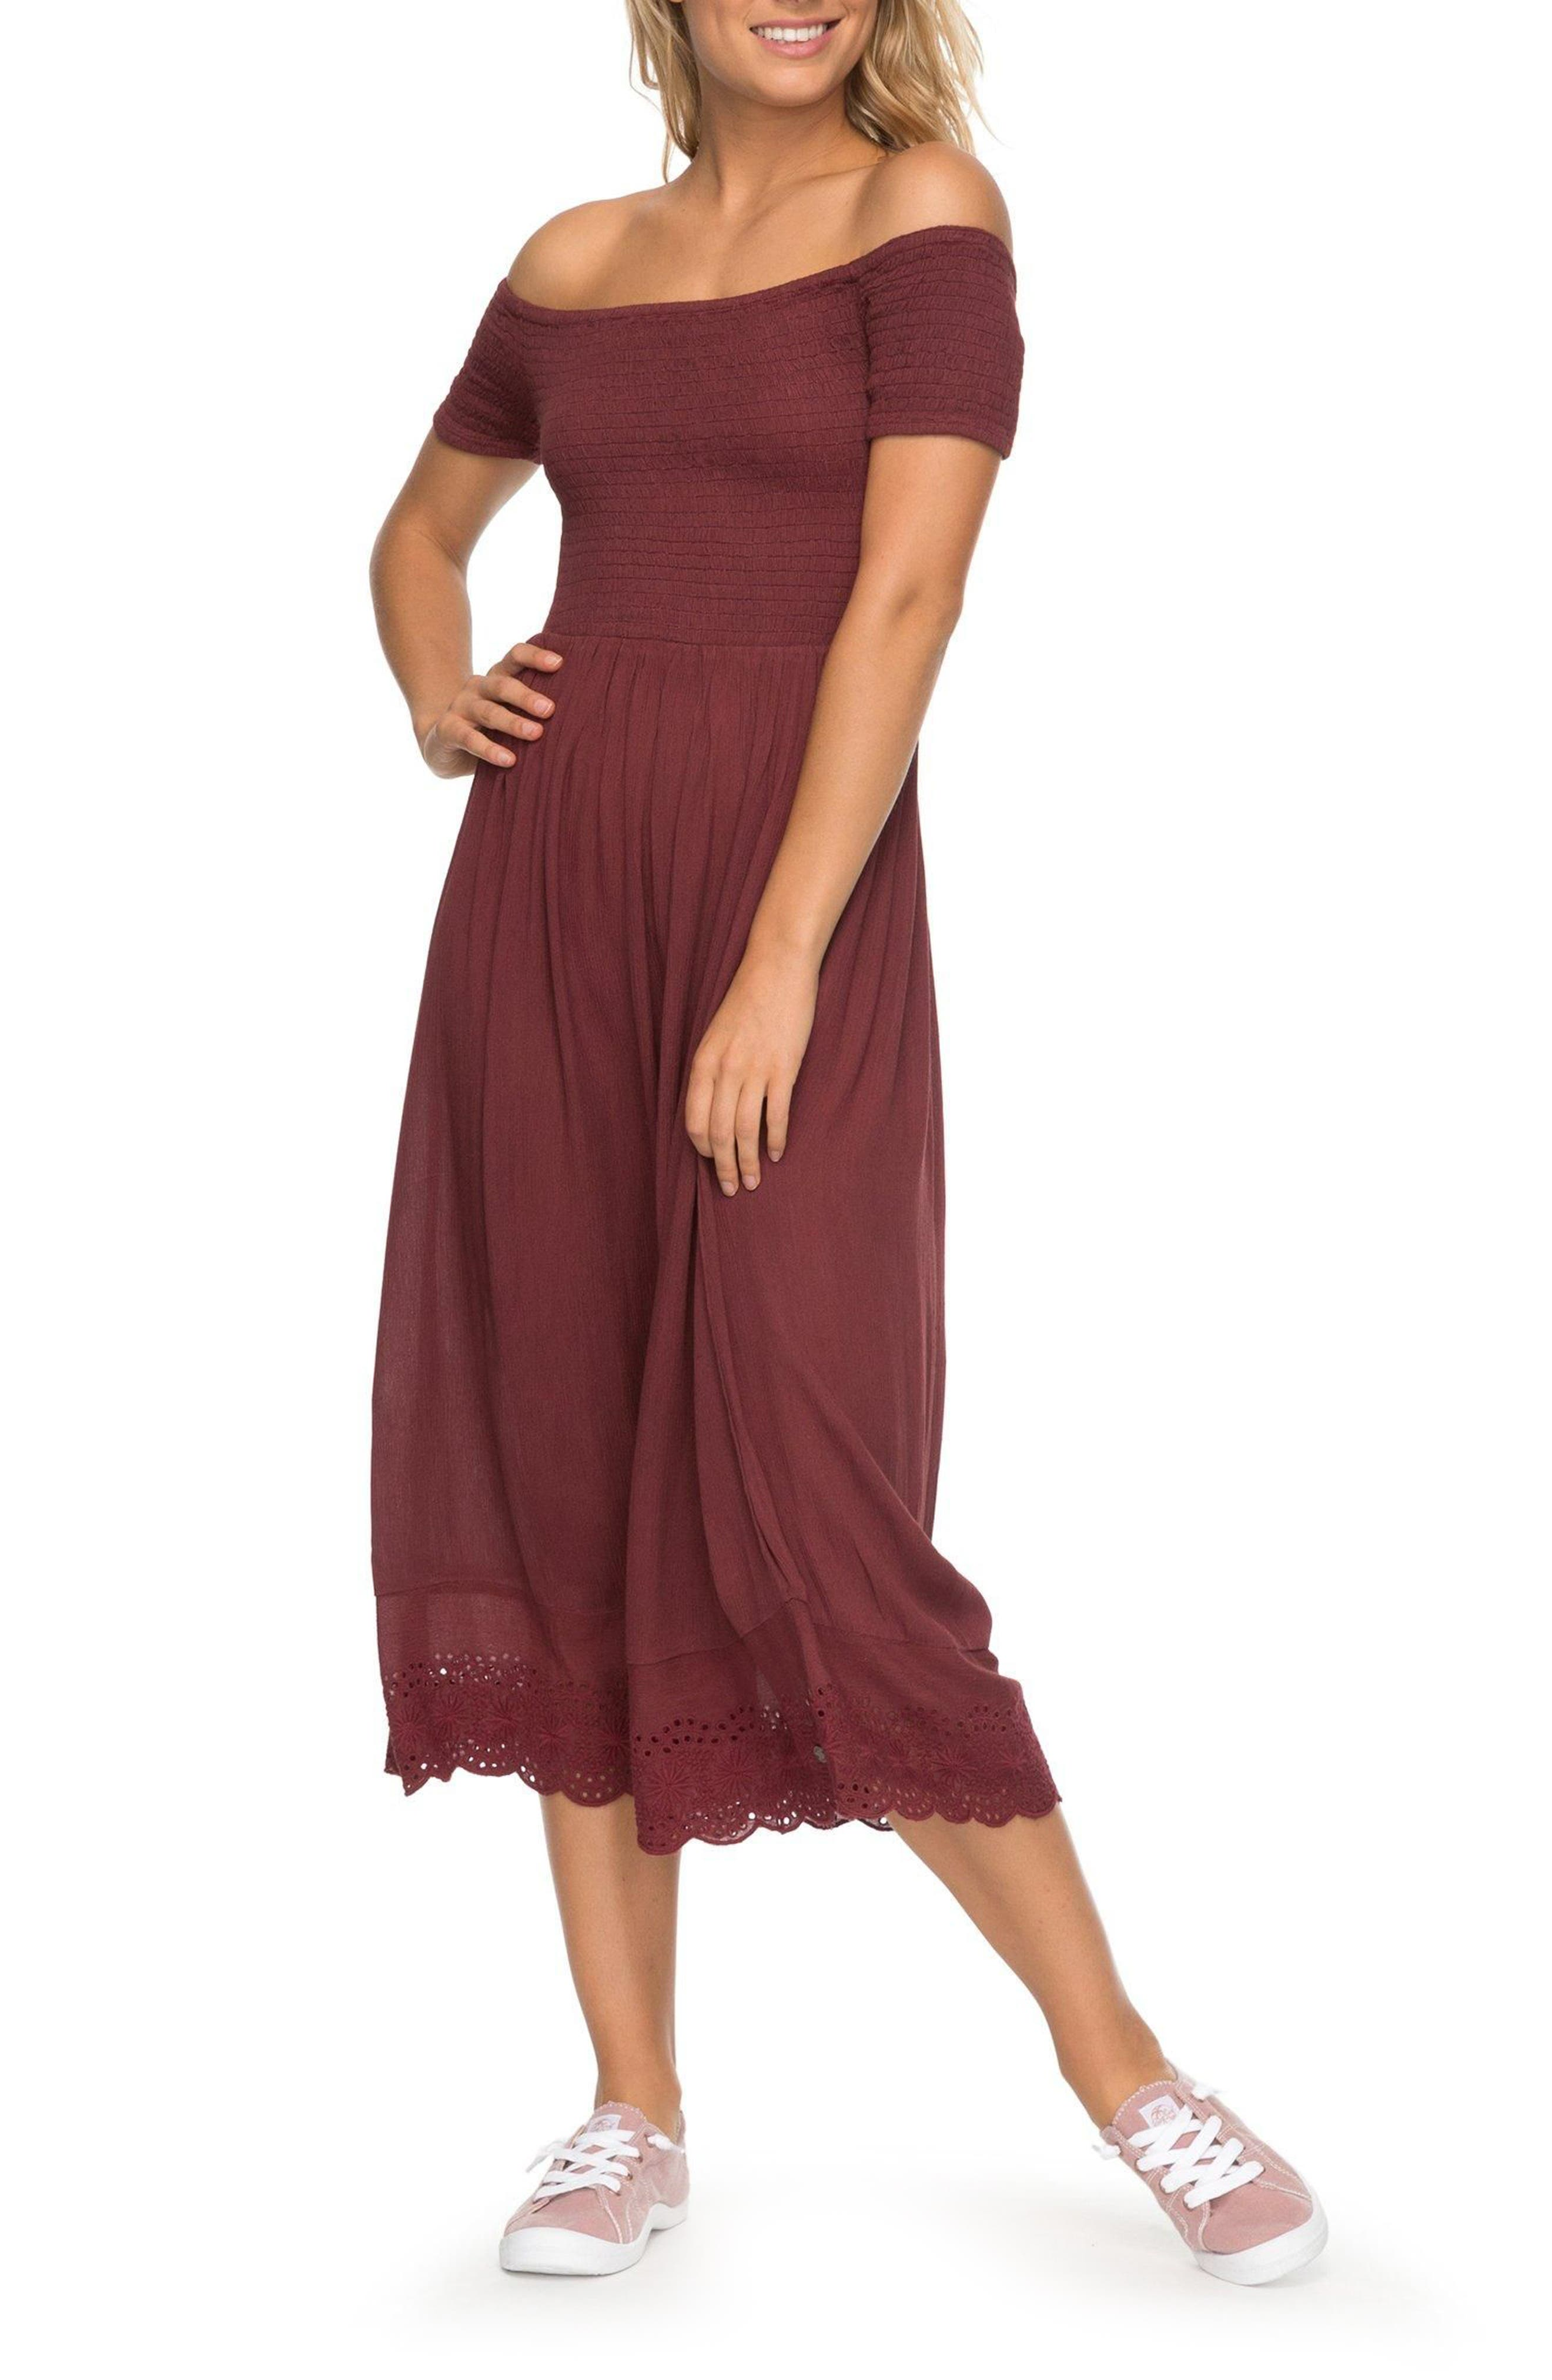 Alternate Image 1 Selected - Roxy Pretty Lovers Off the Shoulder Midi Dress